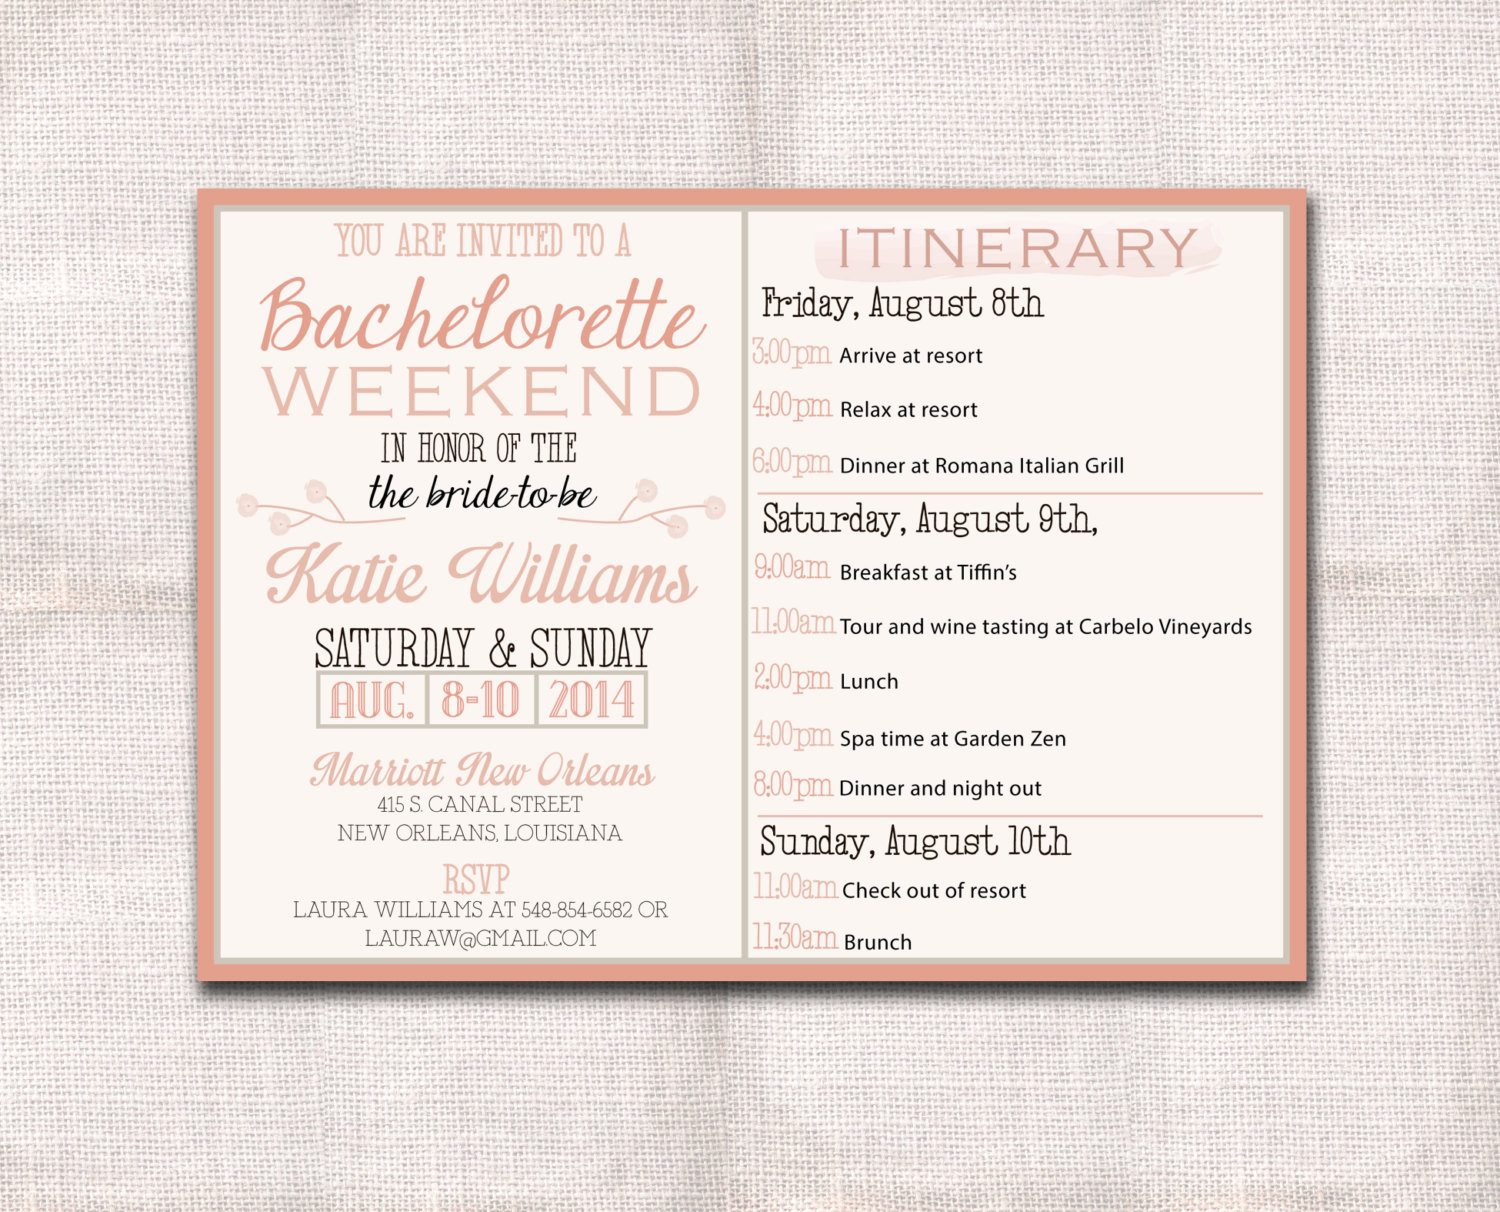 Bachelorette Party Itinerary Template New Bachelorette Party Weekend Invitation and Itinerary Custom